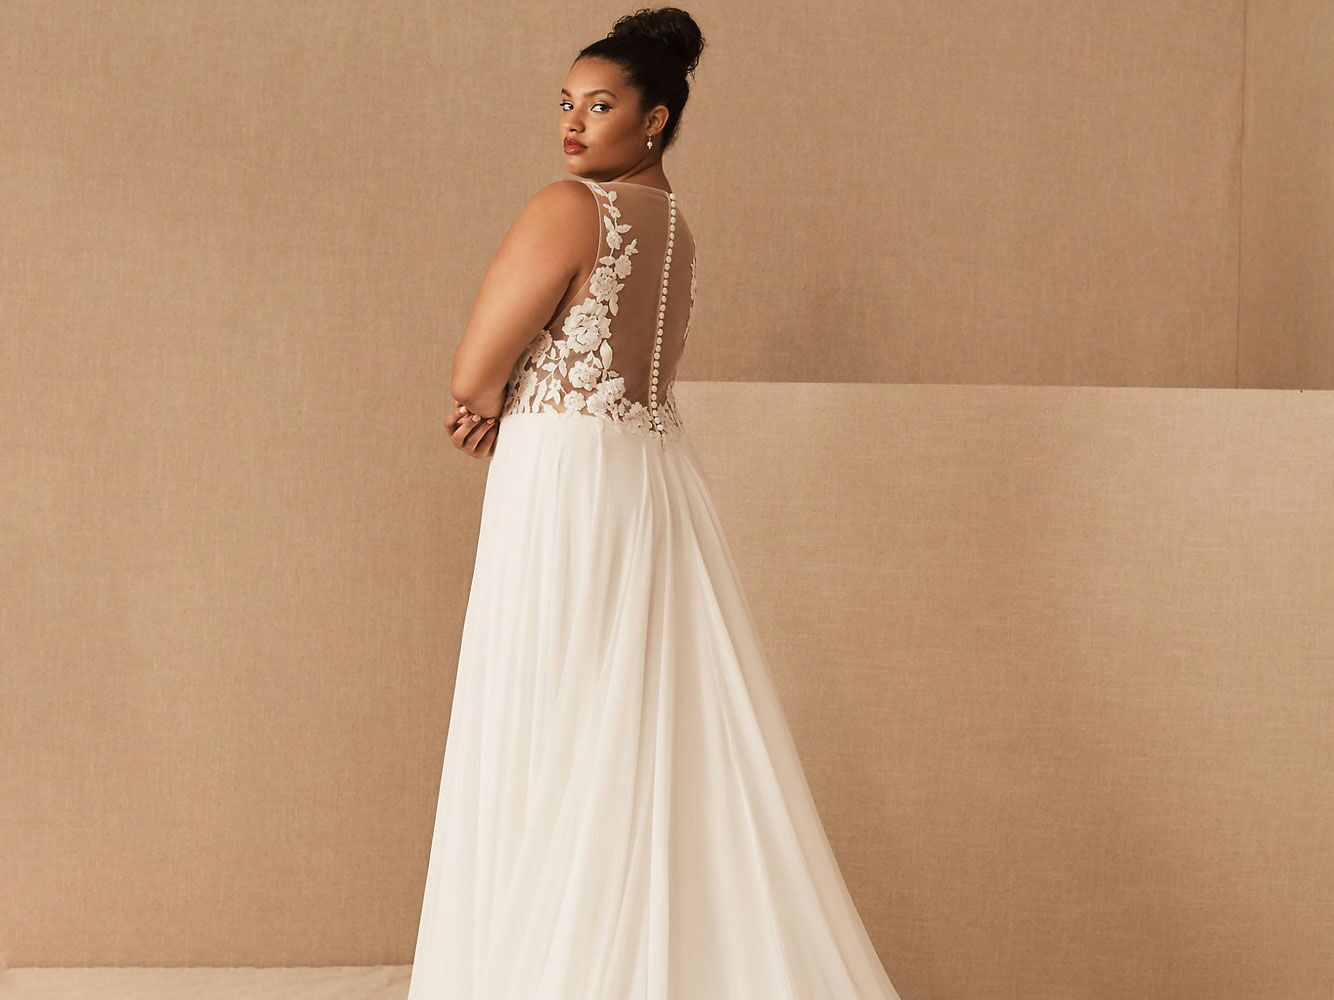 20 Plus Size Wedding Dresses For Every Size Shape Style